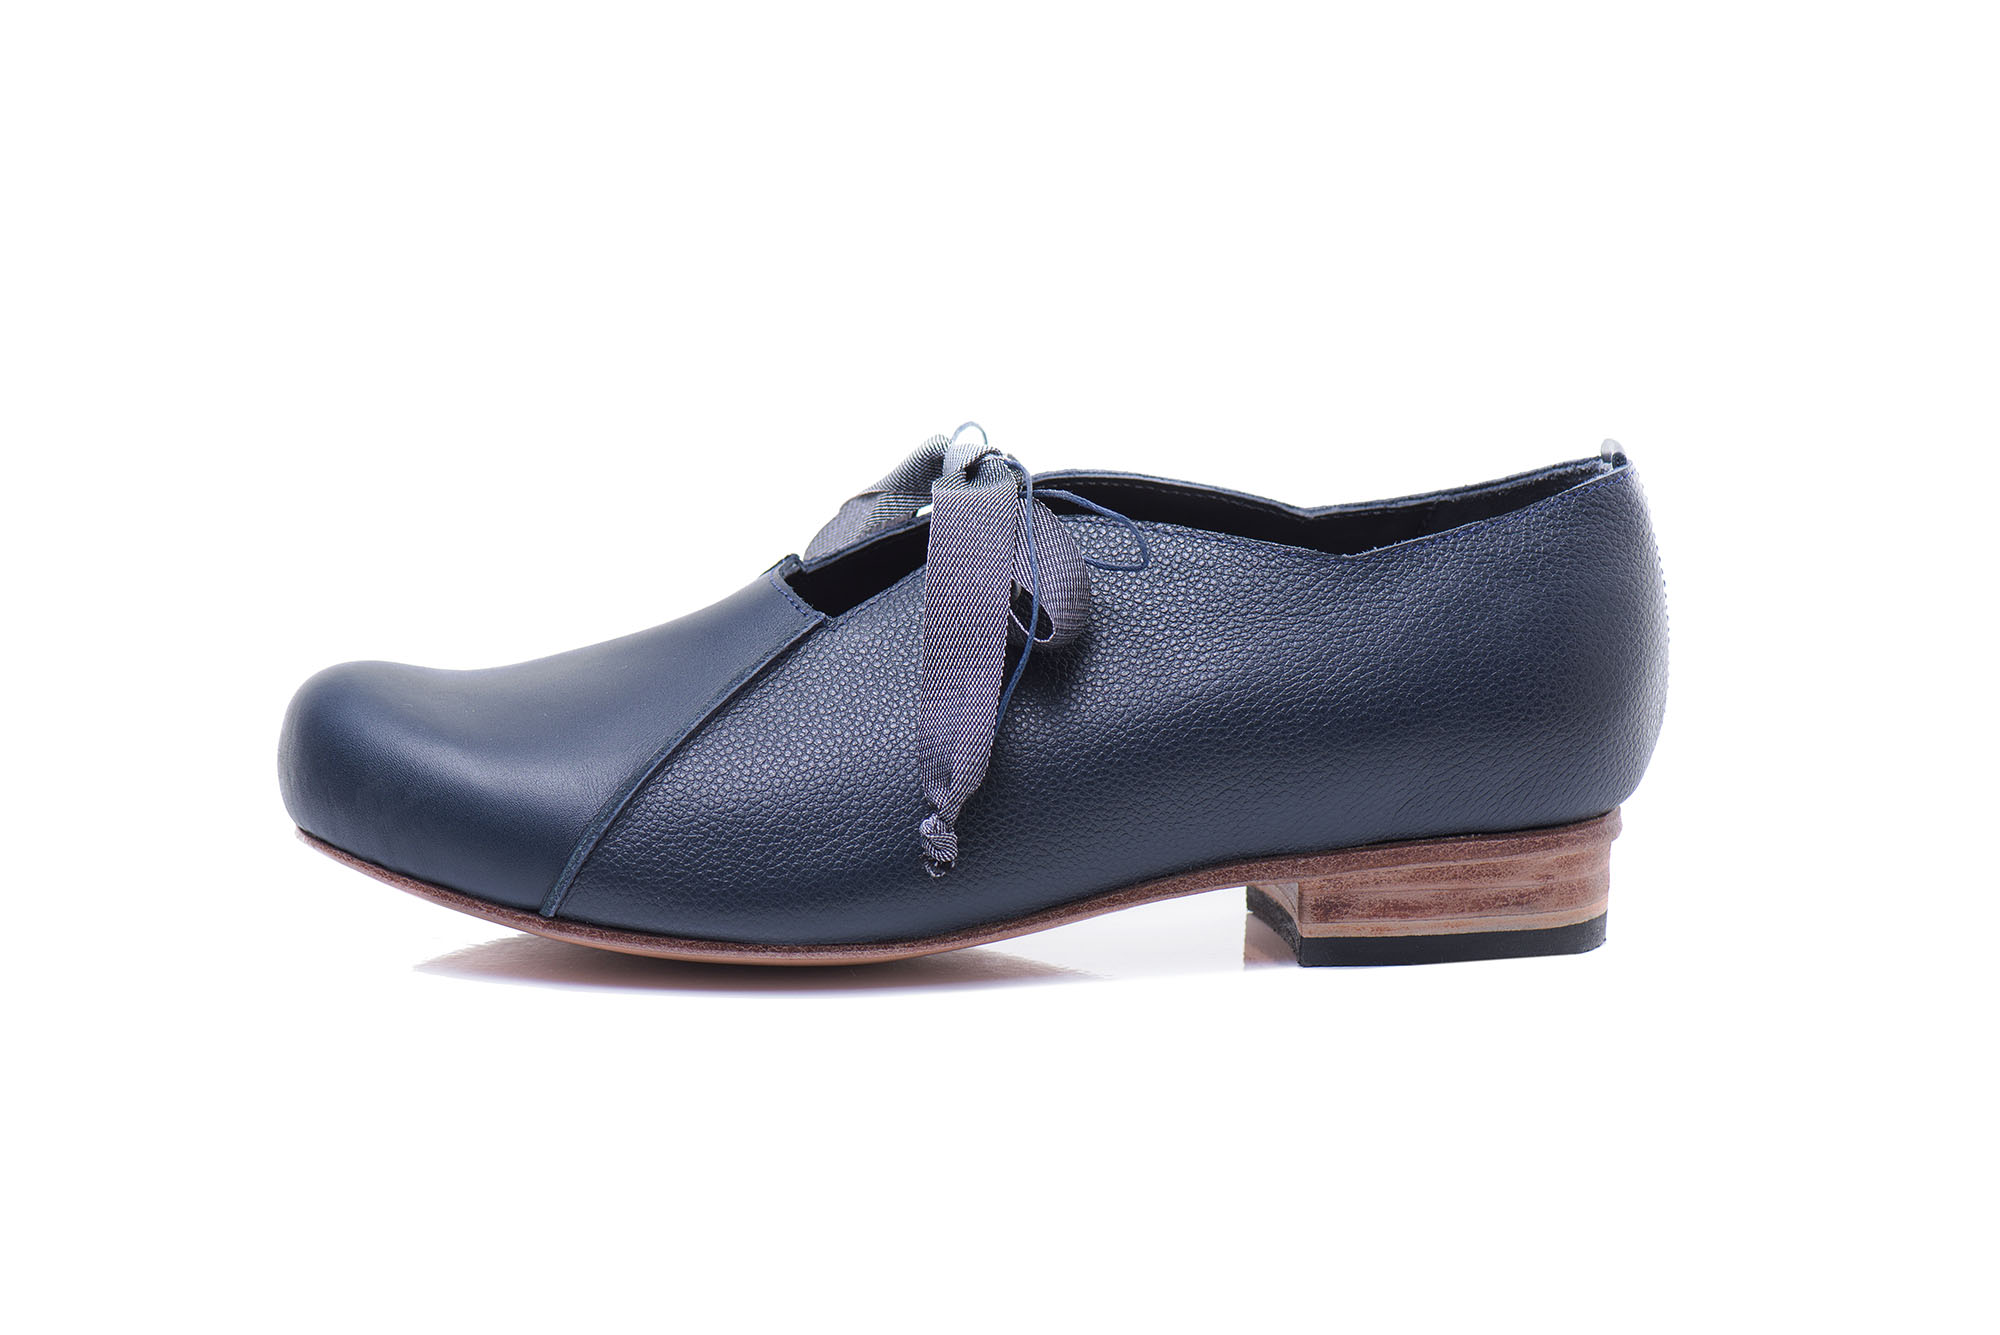 Navy blue leather lace up shoes by June9Concept